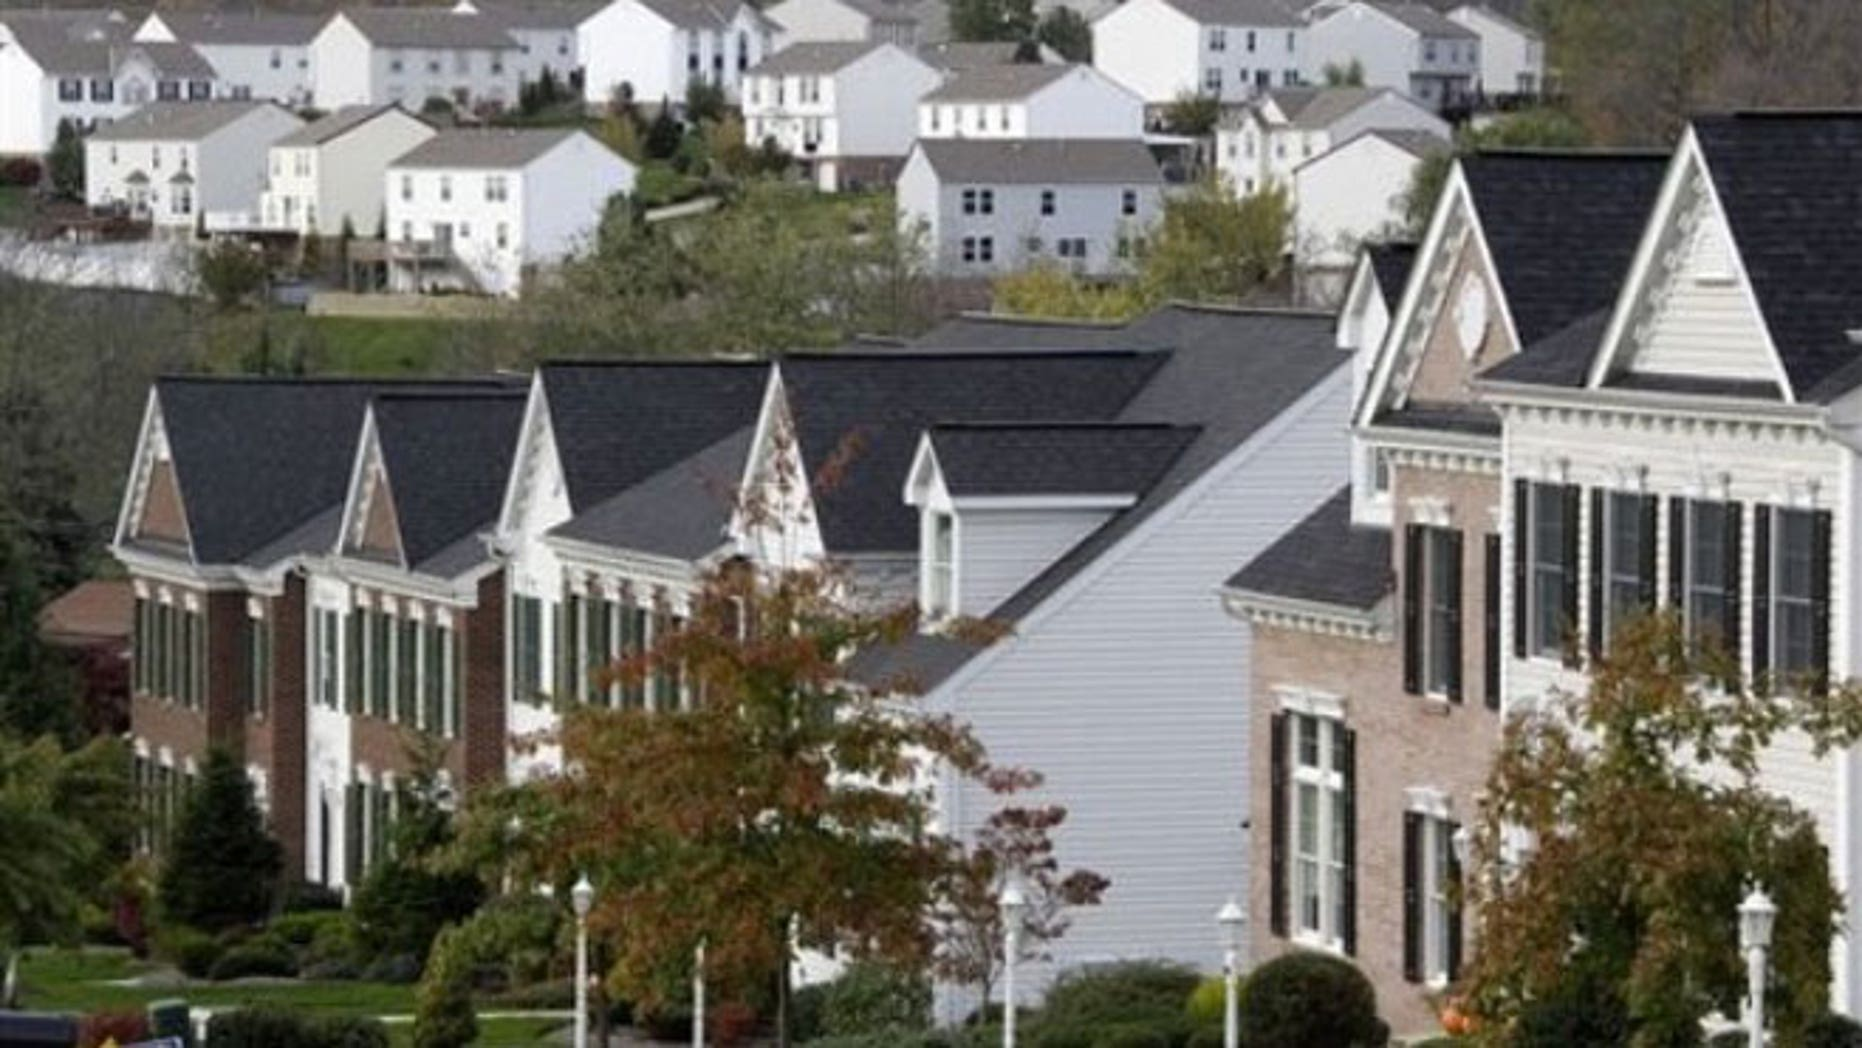 This Oct. 18, 2011 file photo, shows two home developments in the Pittsburgh suburb Canonsburg, Pa. For the first time in a century, America's largest cities are growing at a faster rate than their surrounding suburbs.